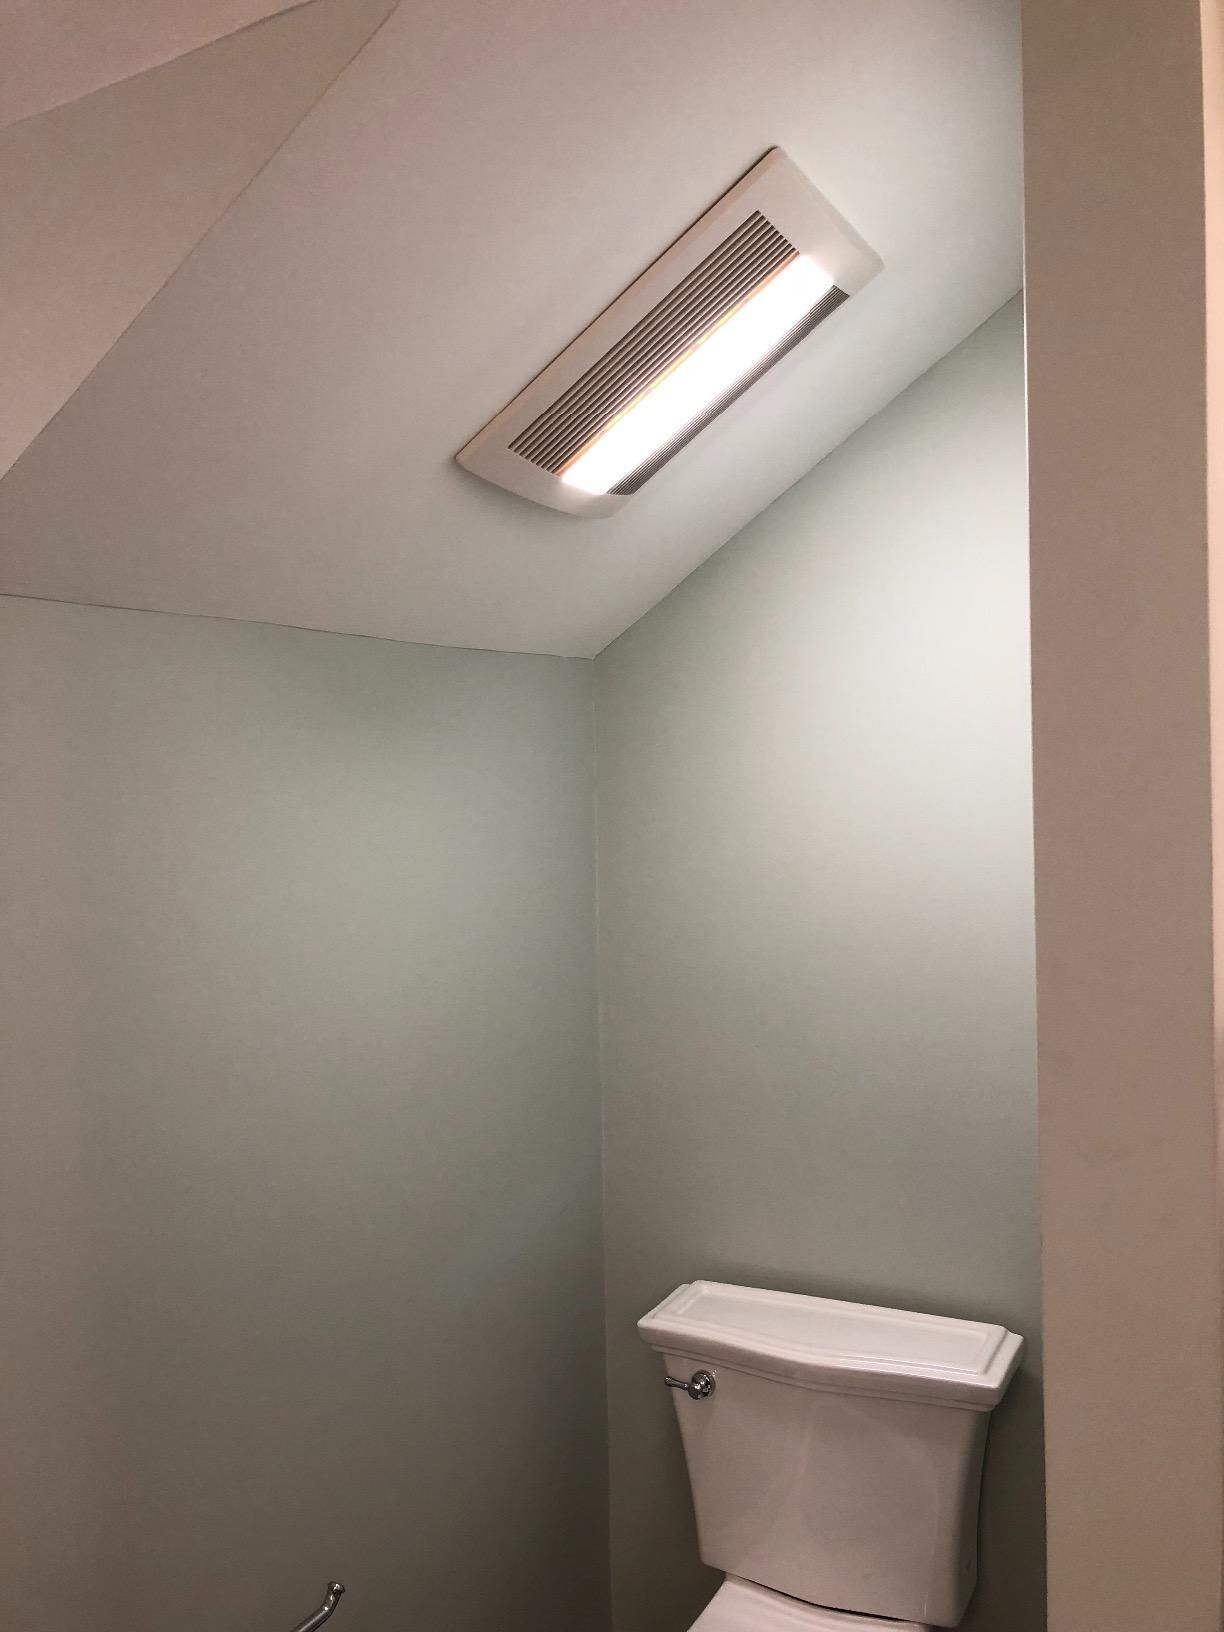 Best Bathroom Fans With Light Reviews In 2020 Bathroom Exhaust